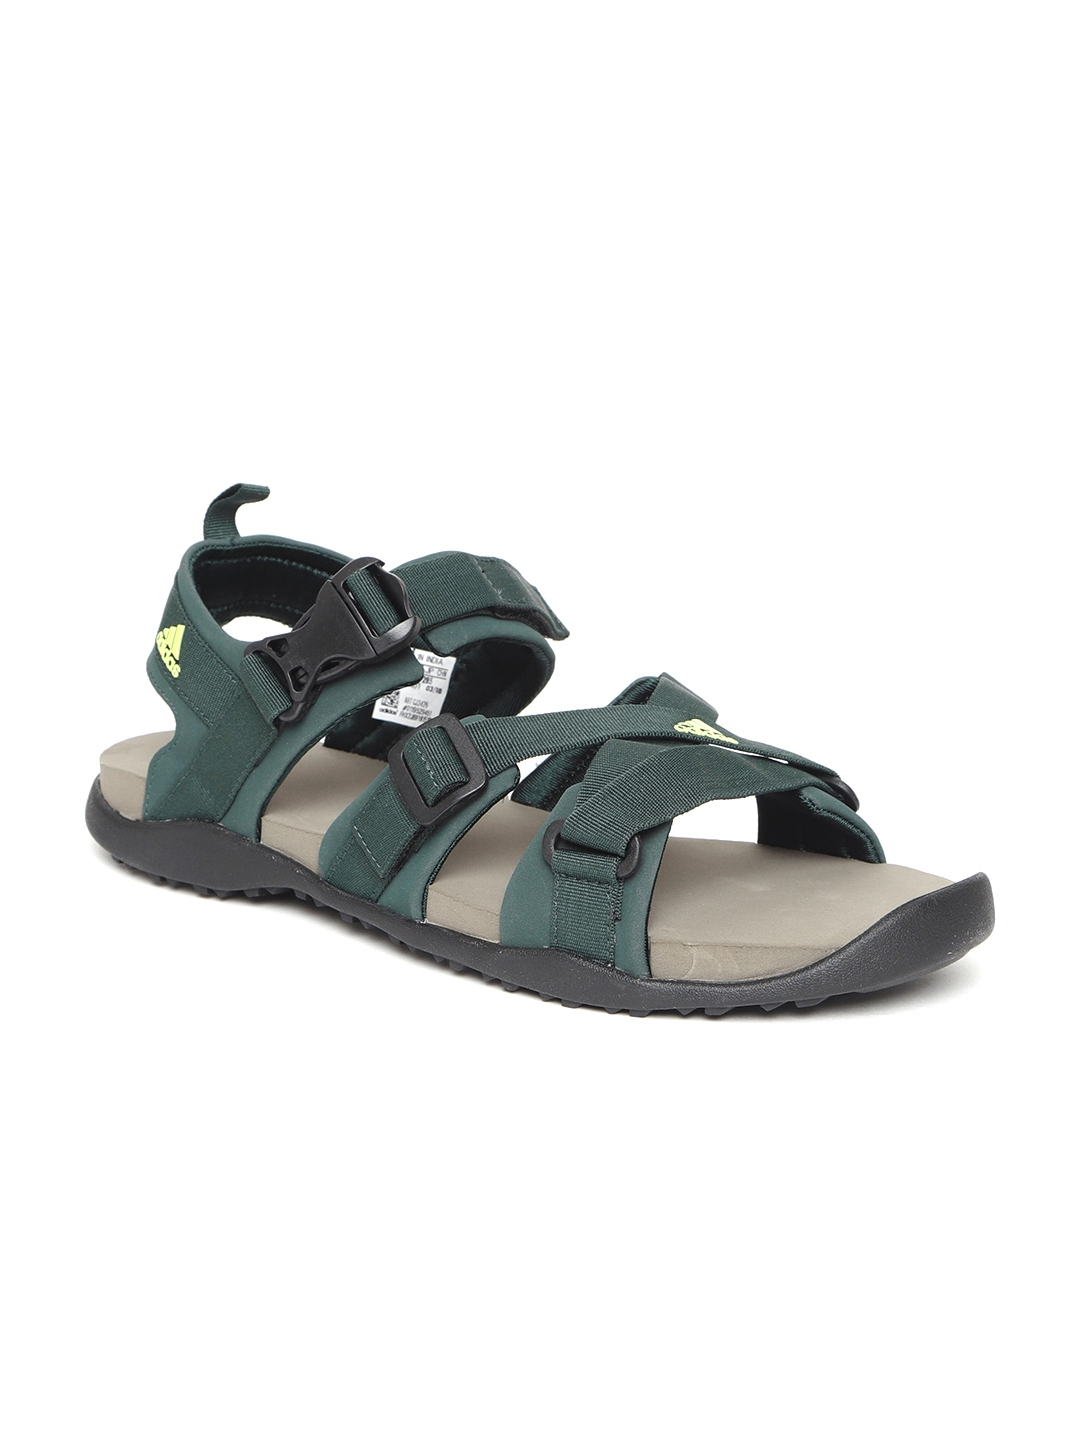 405535b0c Buy ADIDAS Men Green GLADI Sports Sandals - Sports Sandals for Men ...